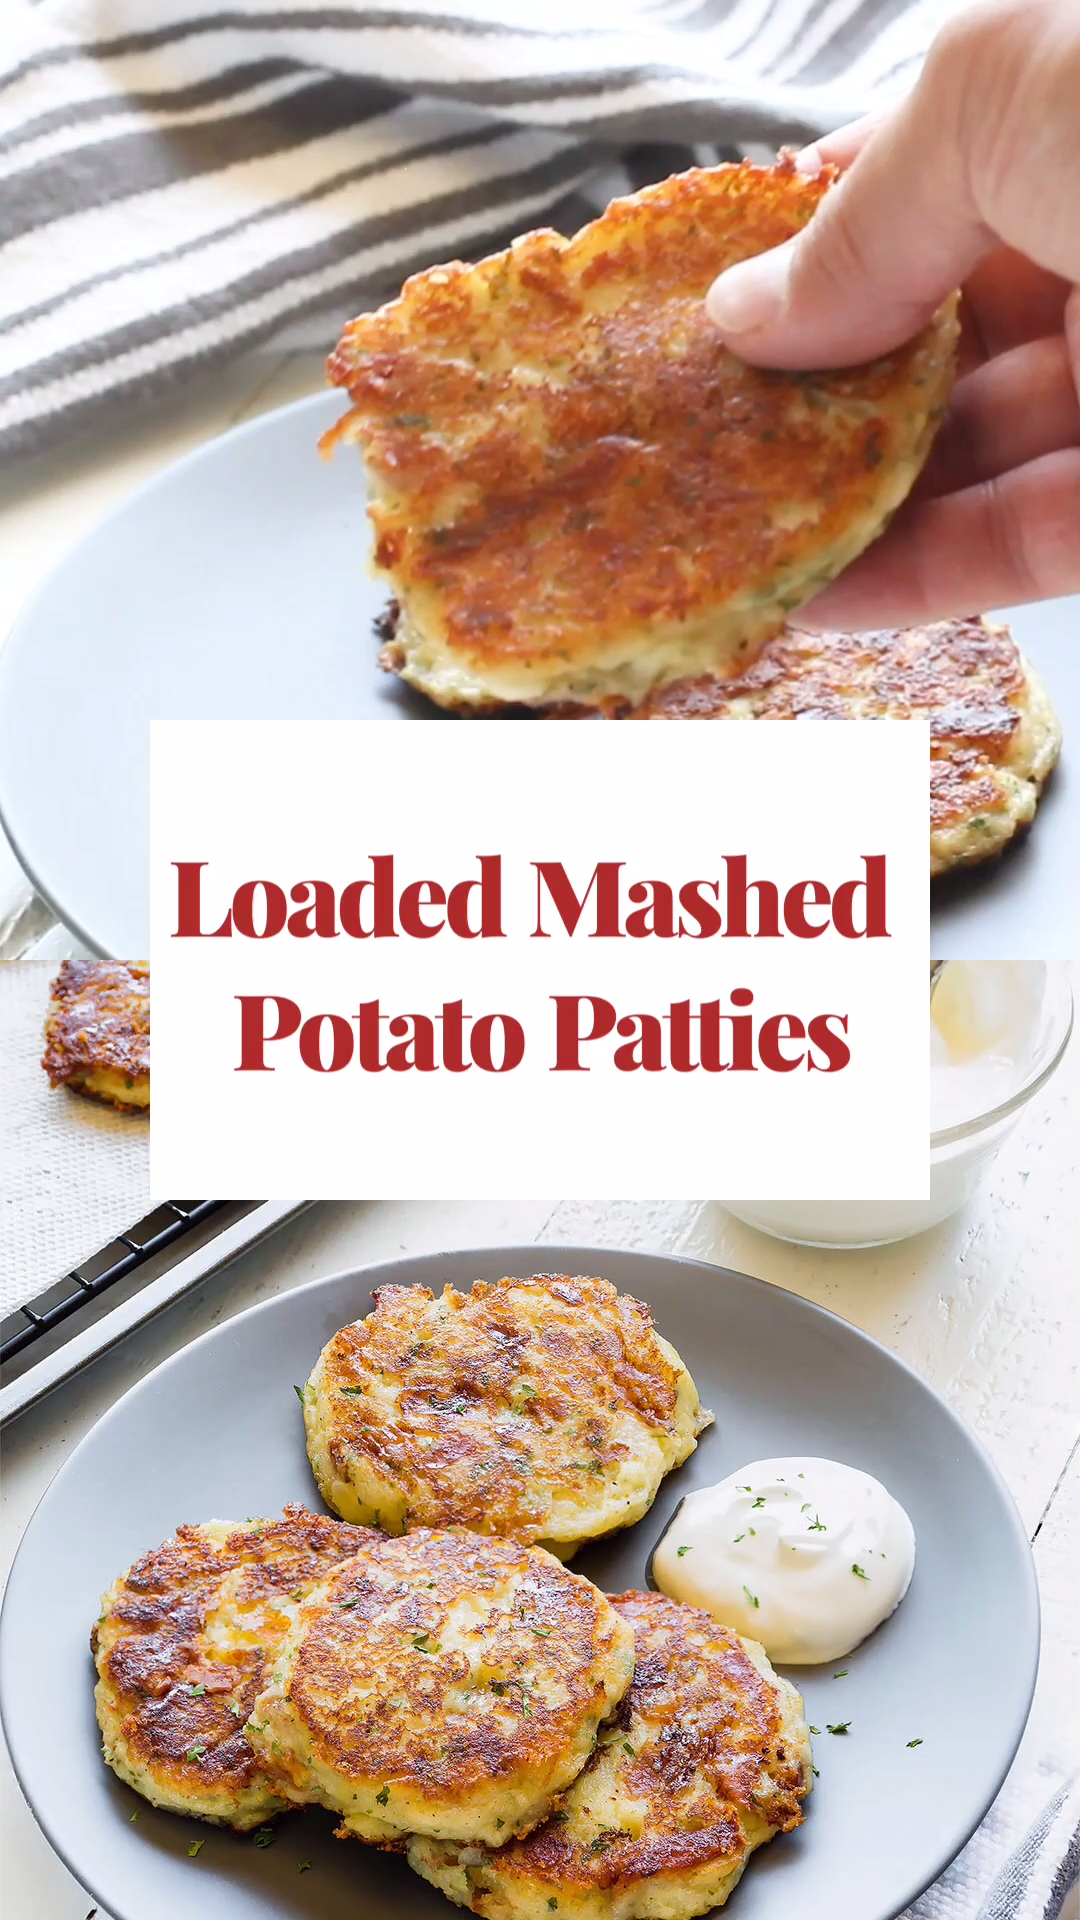 The BEST Loaded Mashed Potato Patties